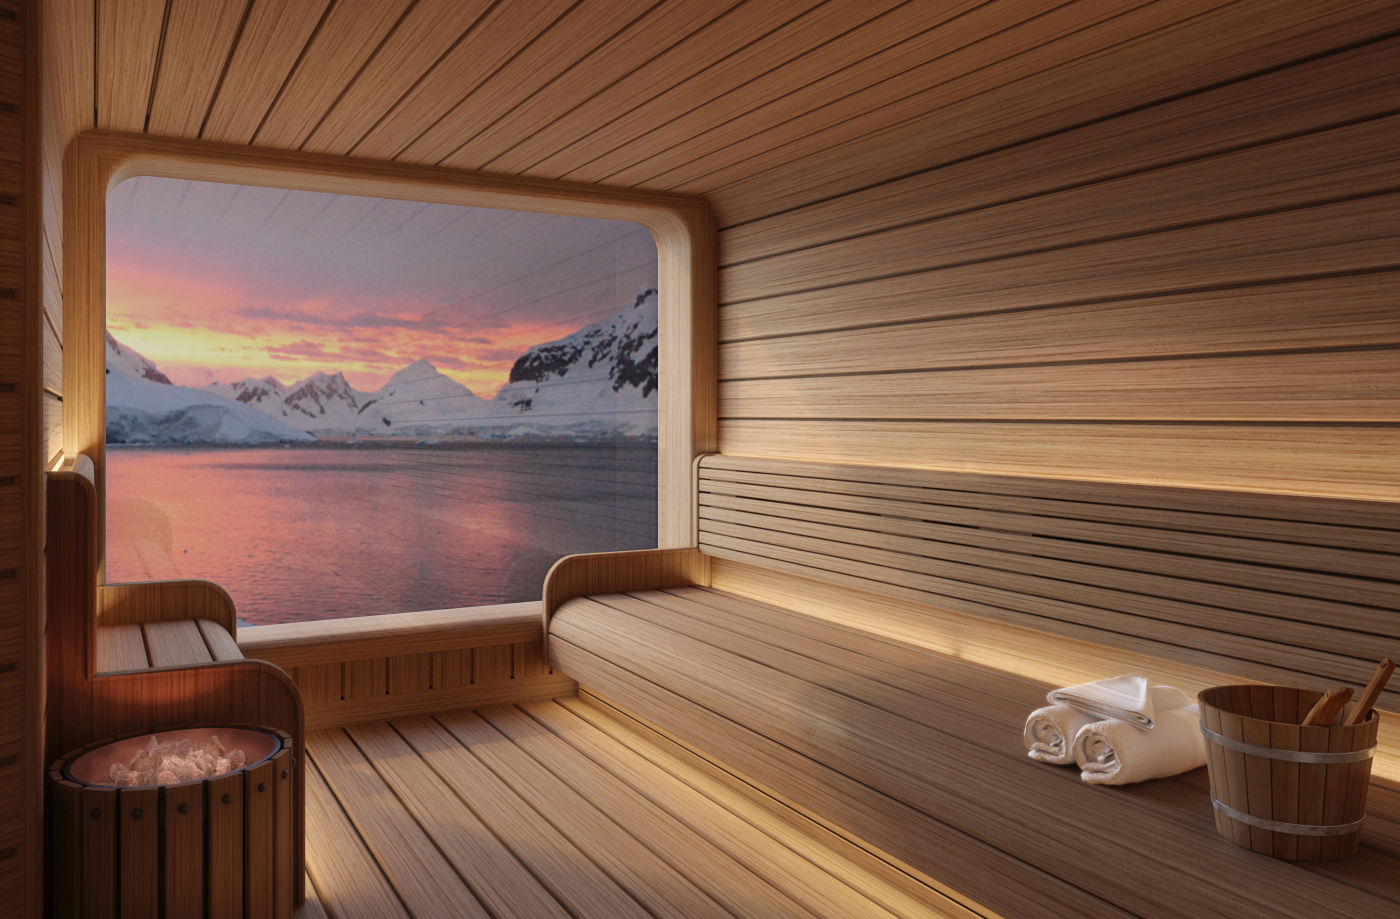 Seabourn expedition ships - Spa Sauna Rendering